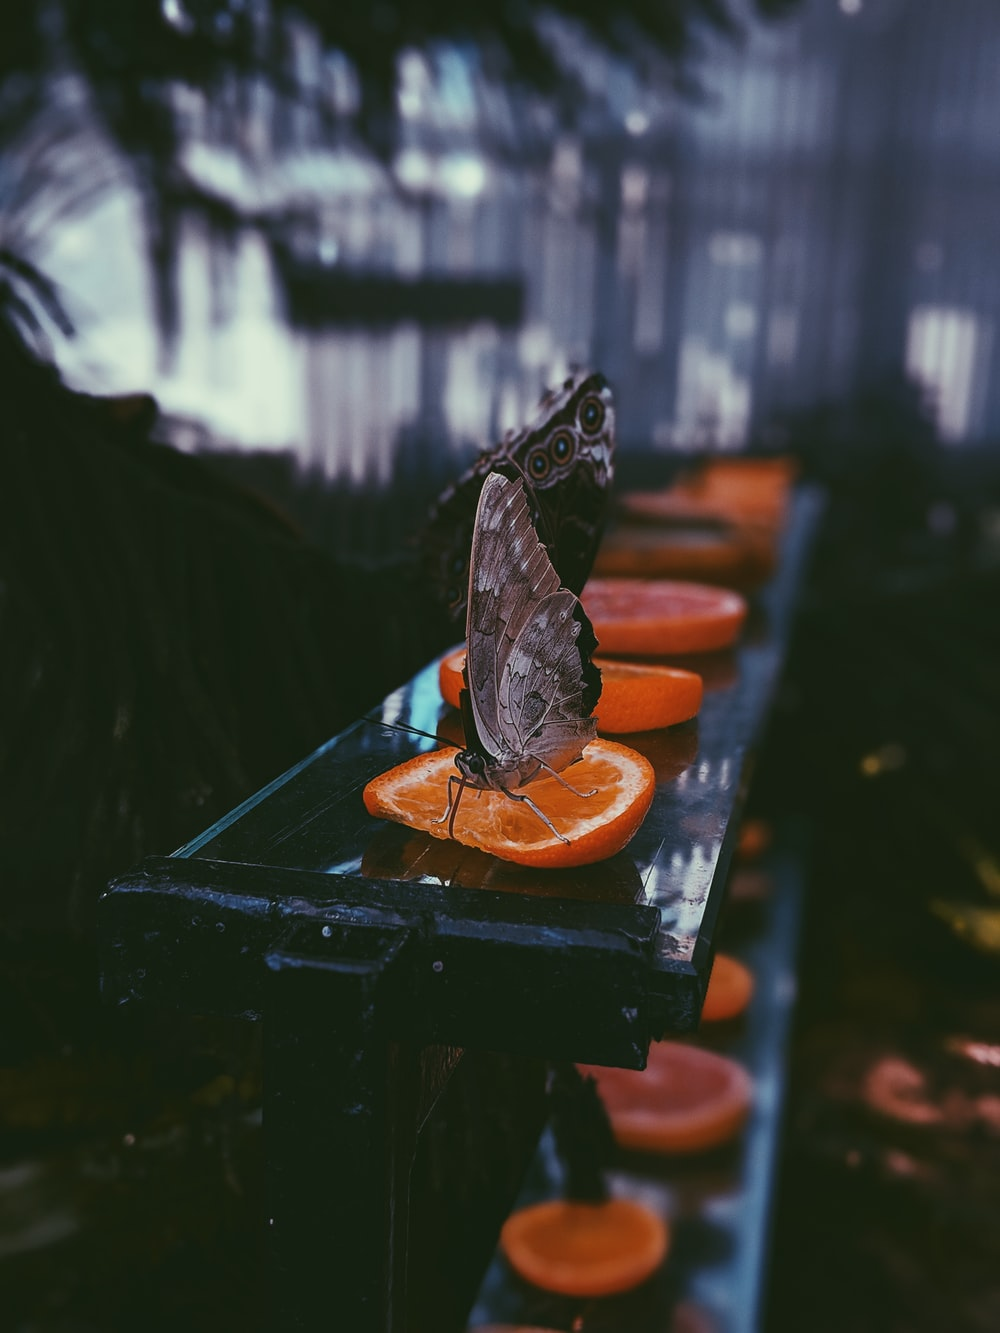 selective focus photography of brown butterfly on sliced orange lime